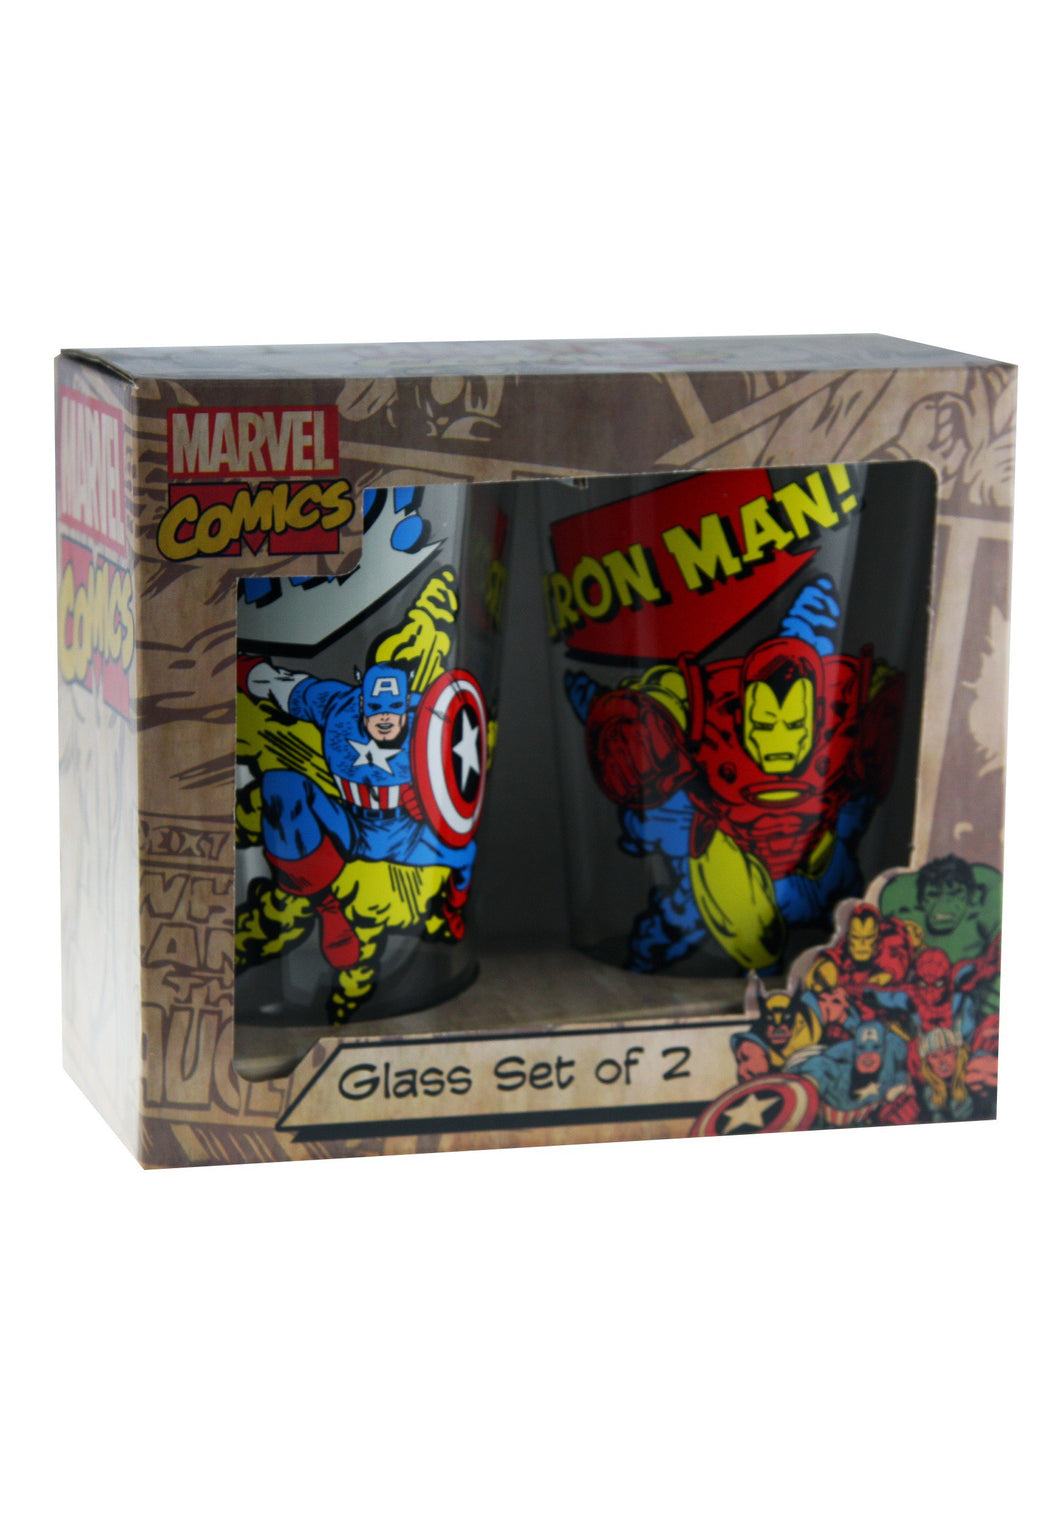 CAPTAIN AMERICA & IRON MAN 2PC GLASS SET